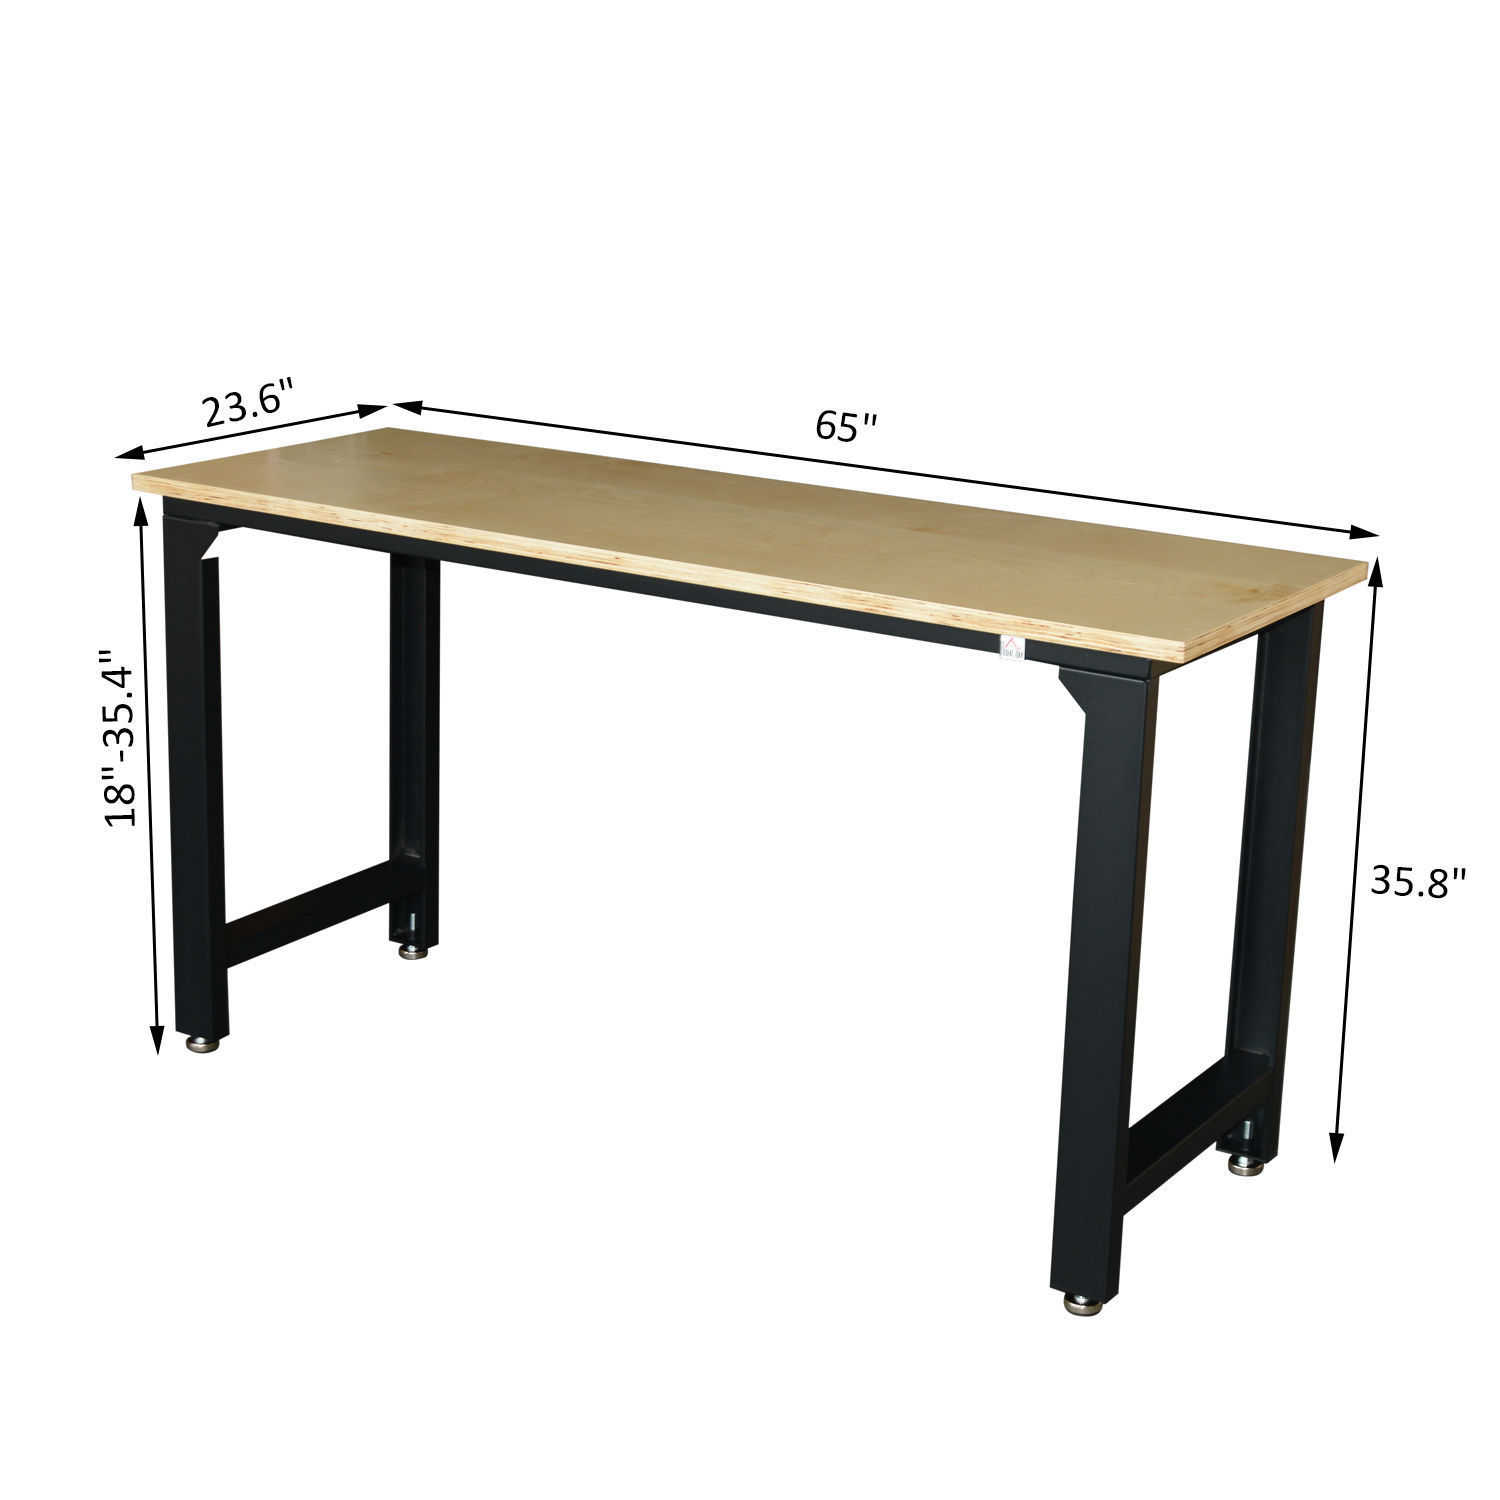 GHP 65'x23.5'x35.5' Black Frame Steel MDF Board Workbench Table with Non-Skid Feet